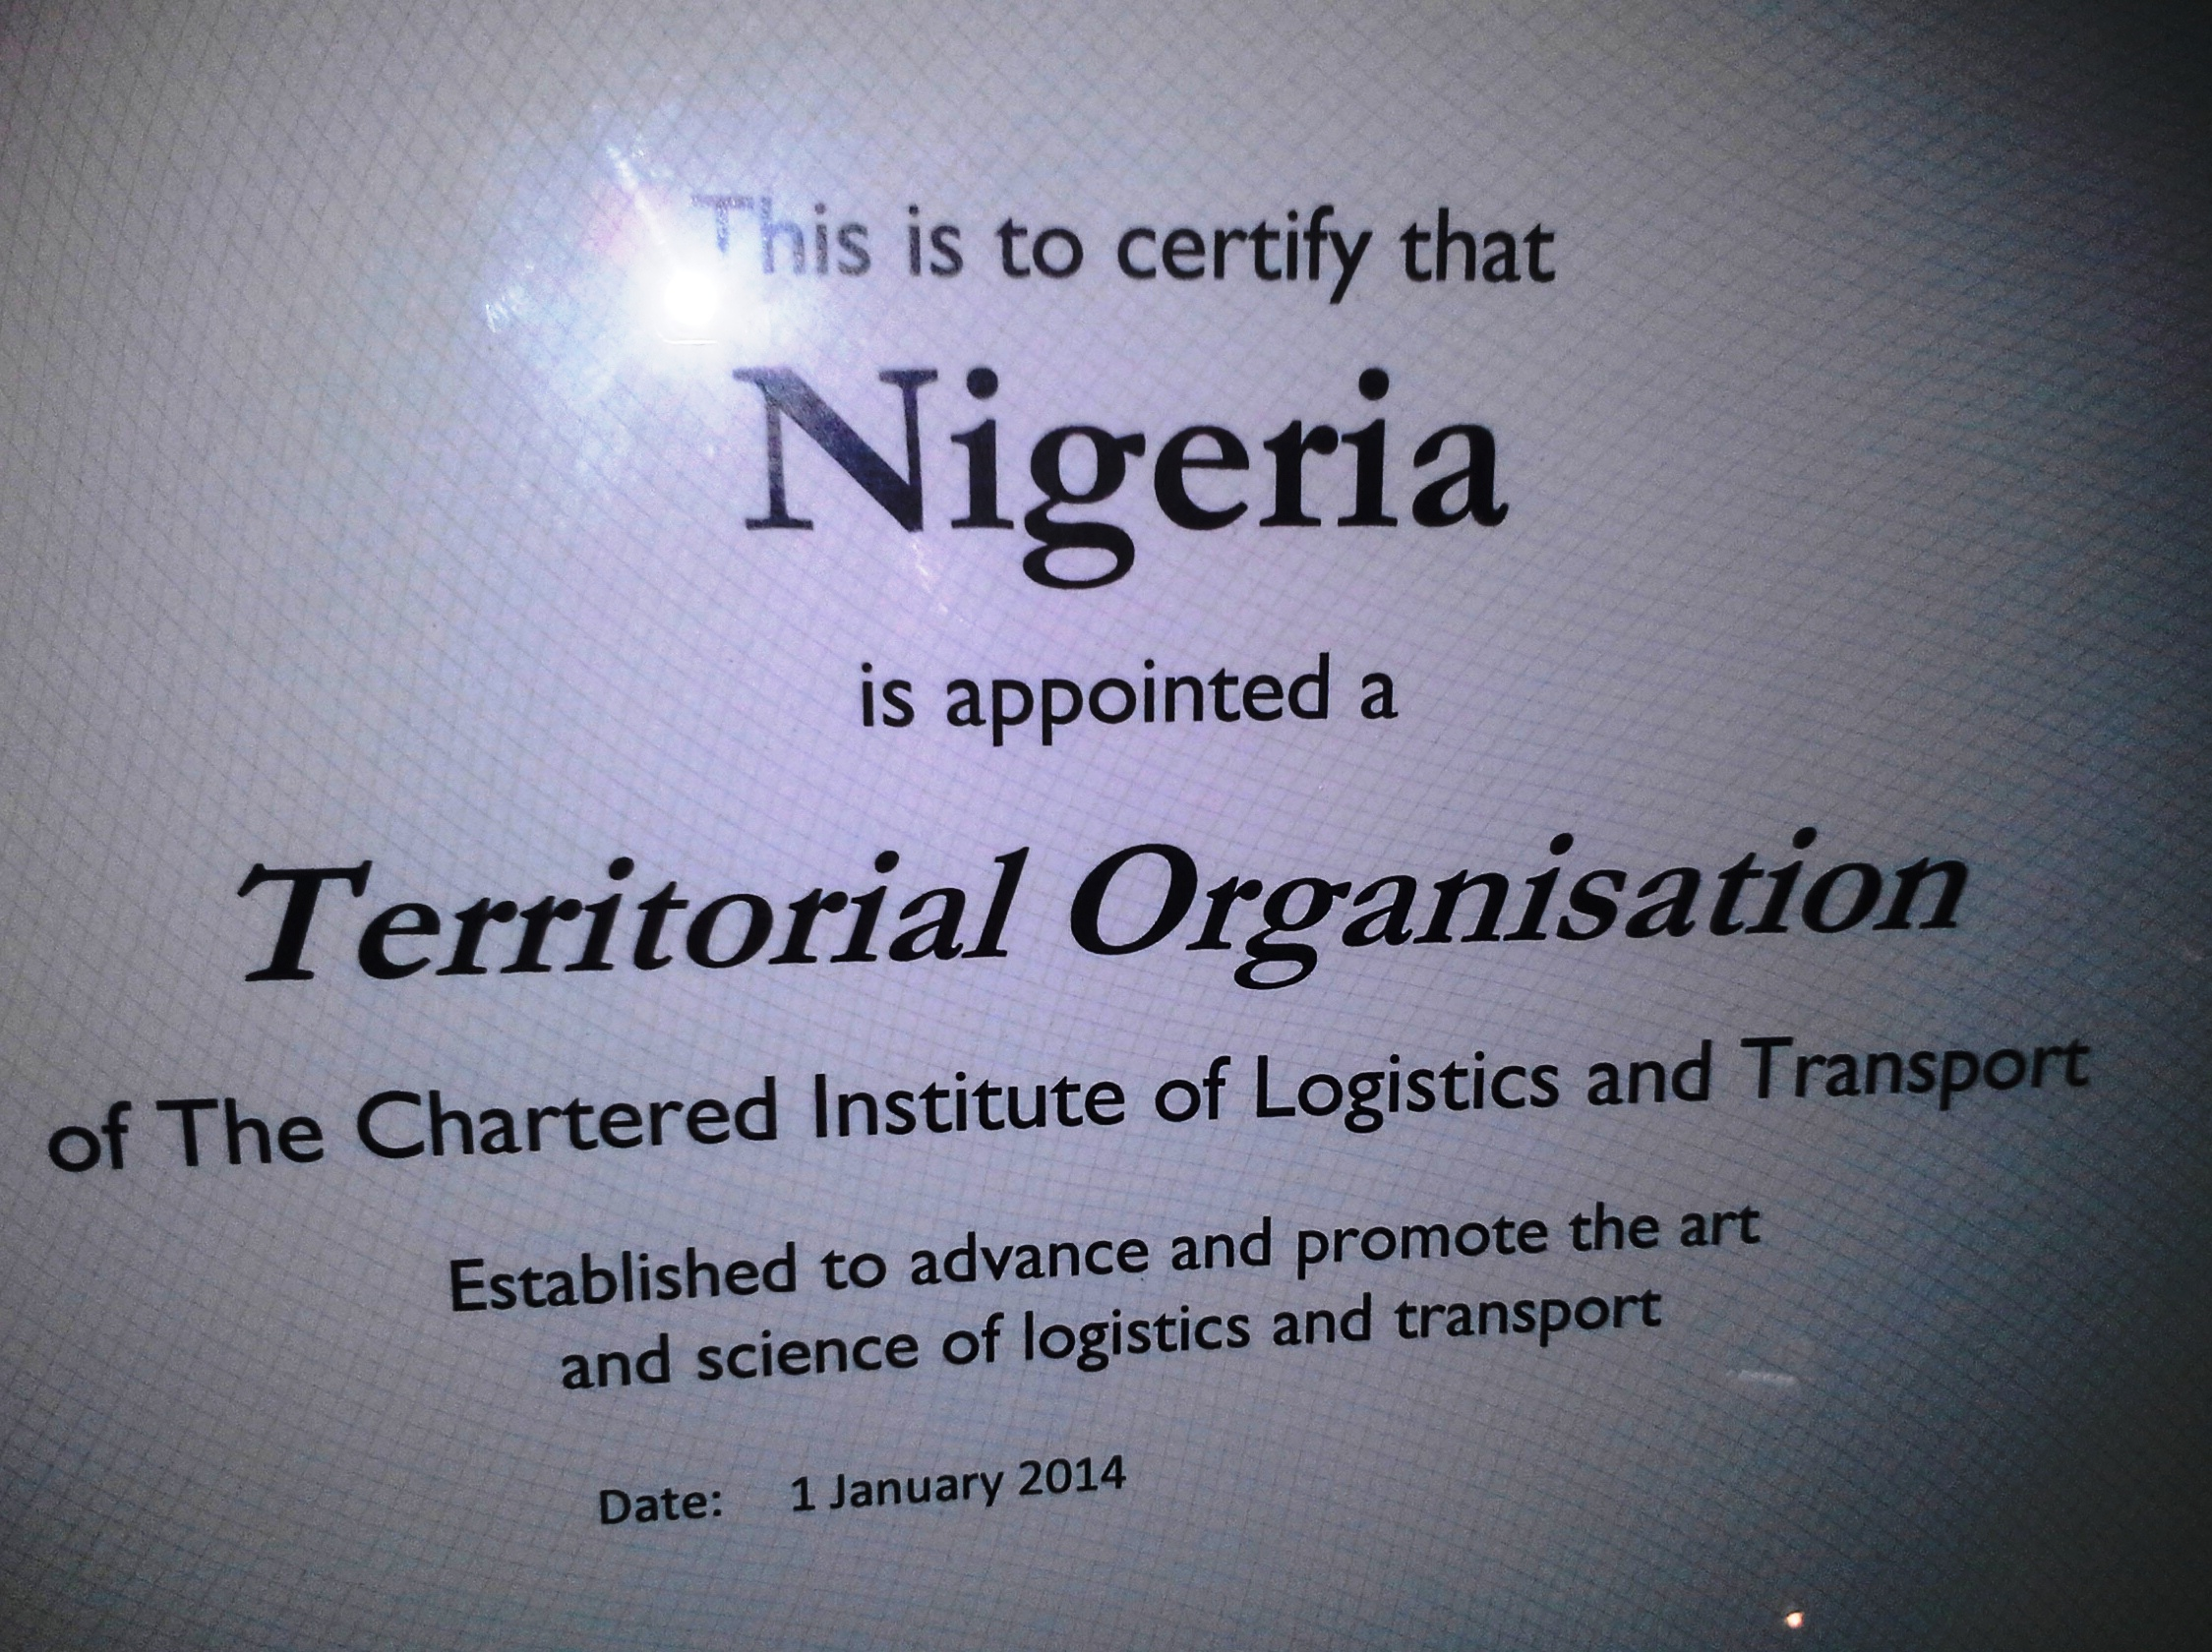 territorial-organizations-certificate-issued-to-cilt-nigeria